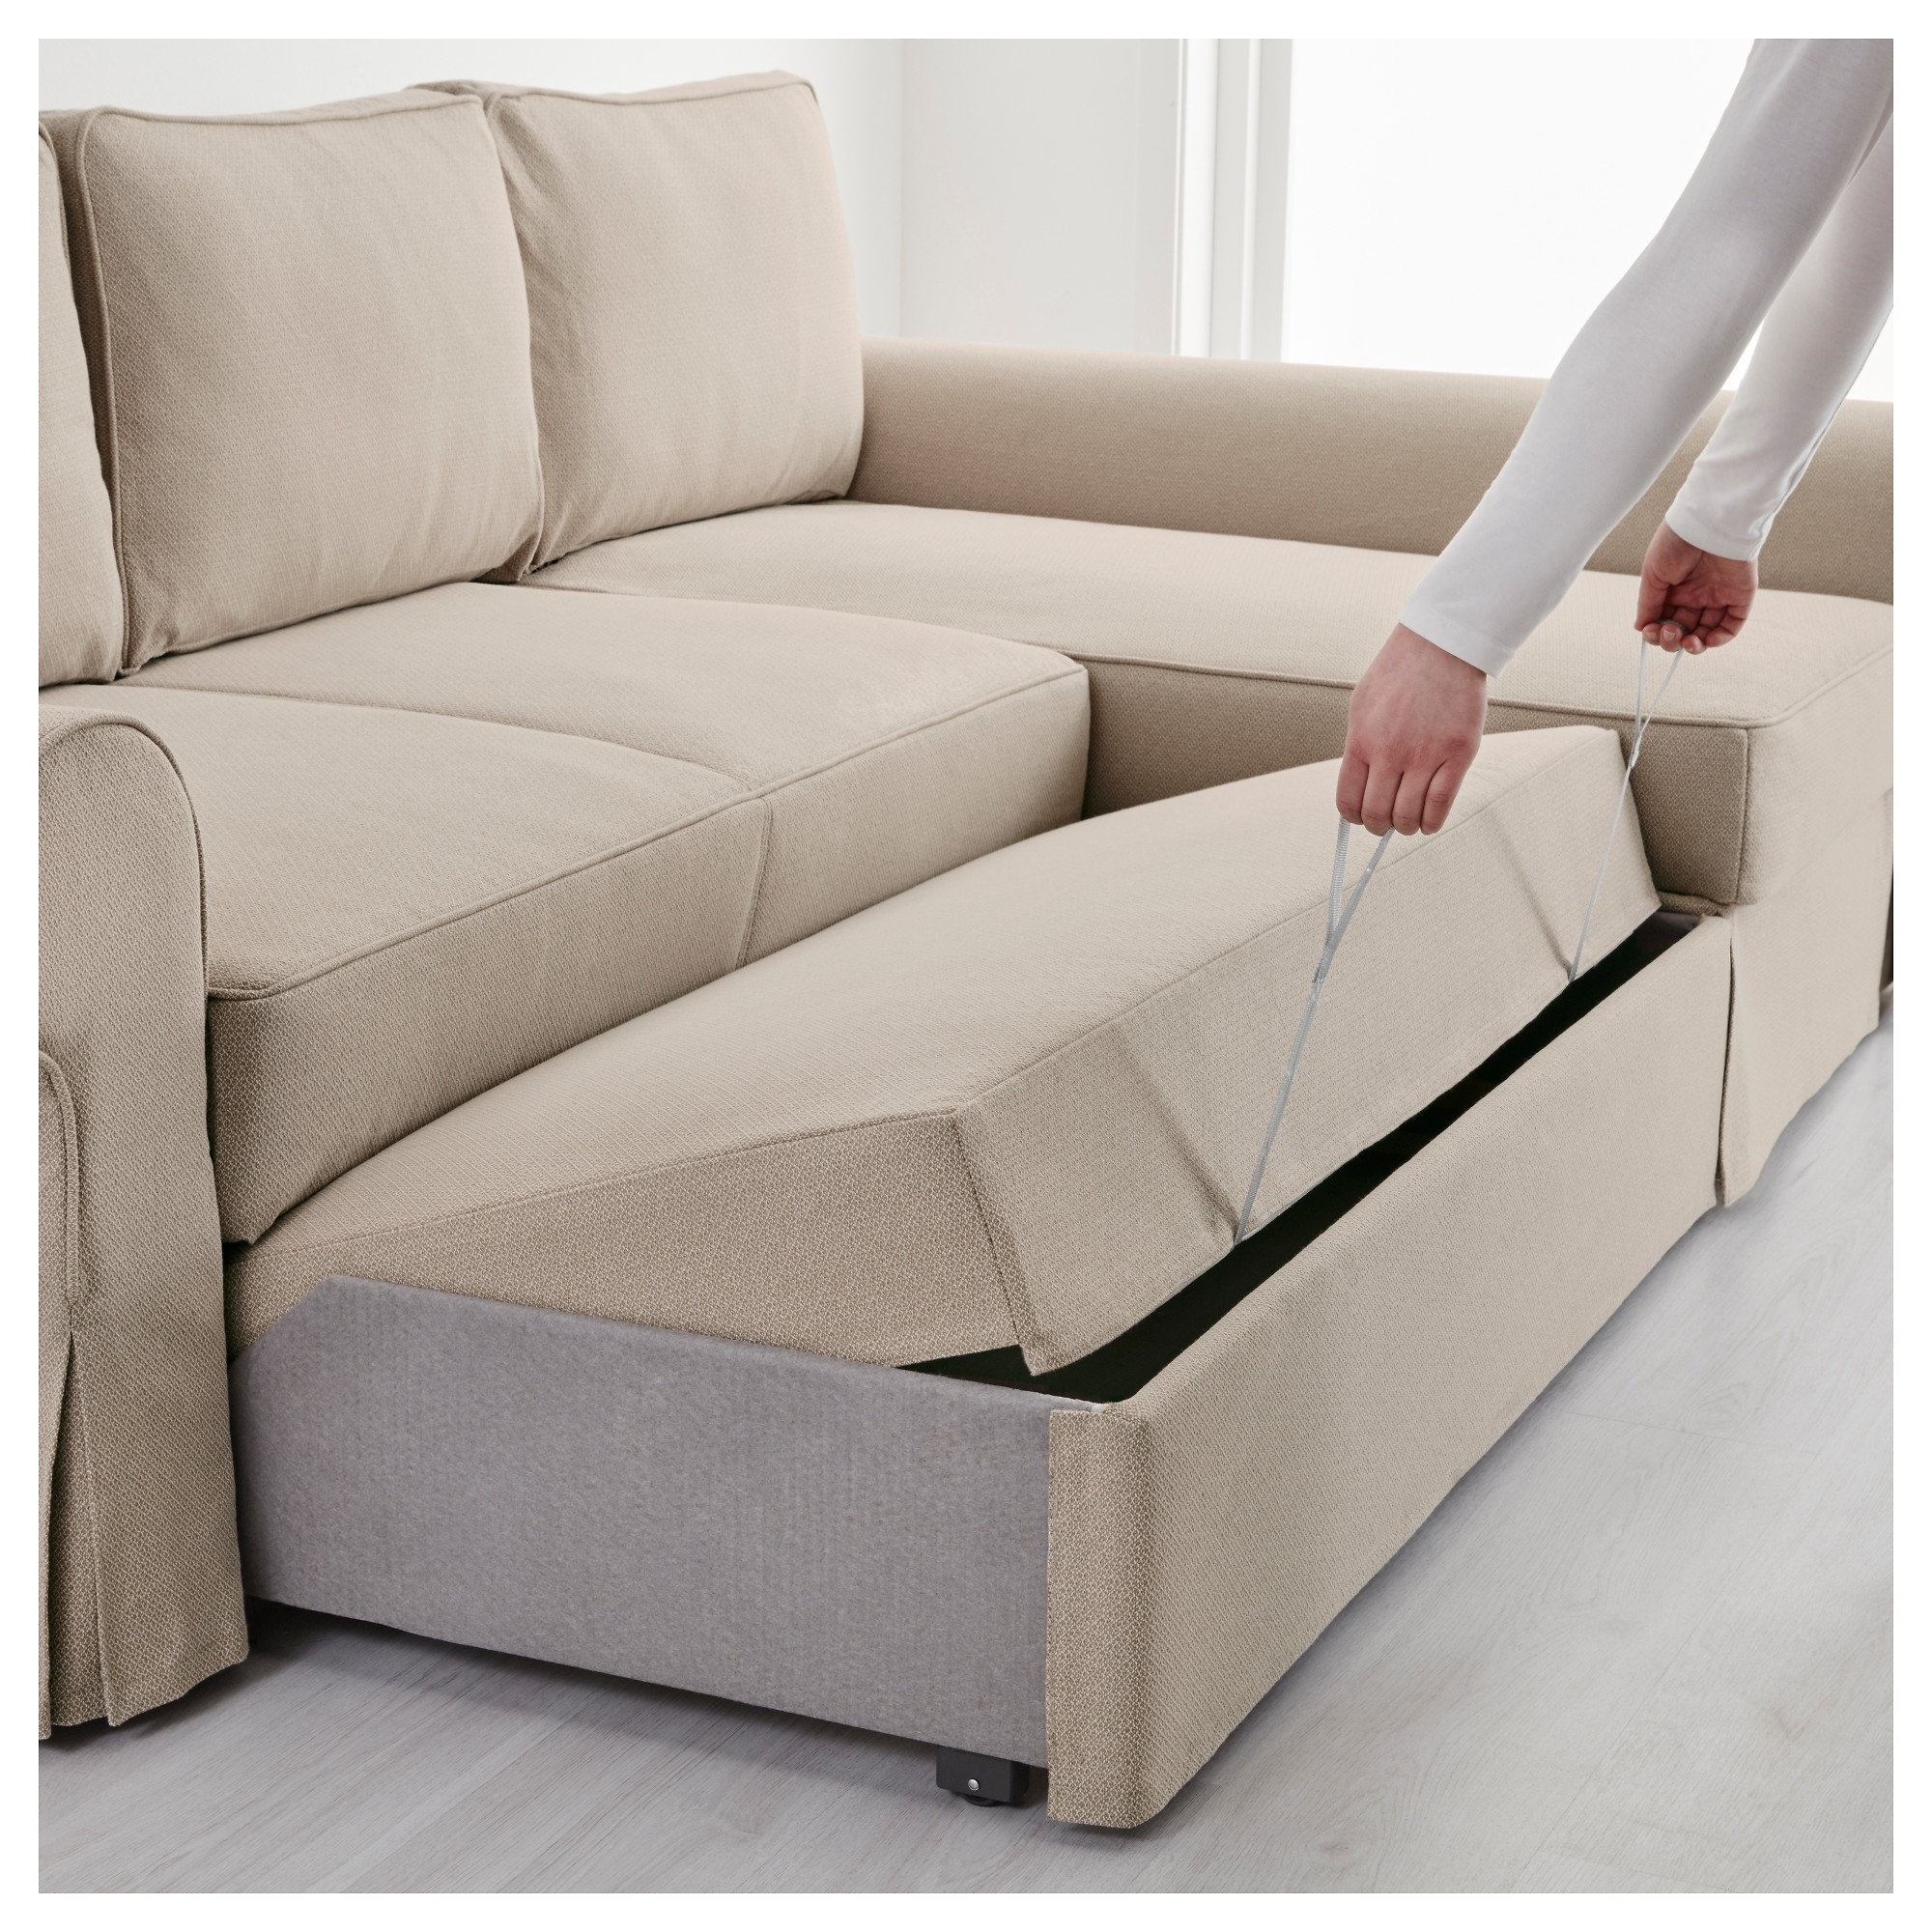 ps sofa bed review single seater beds con chaise longue ikea excellent nockeby